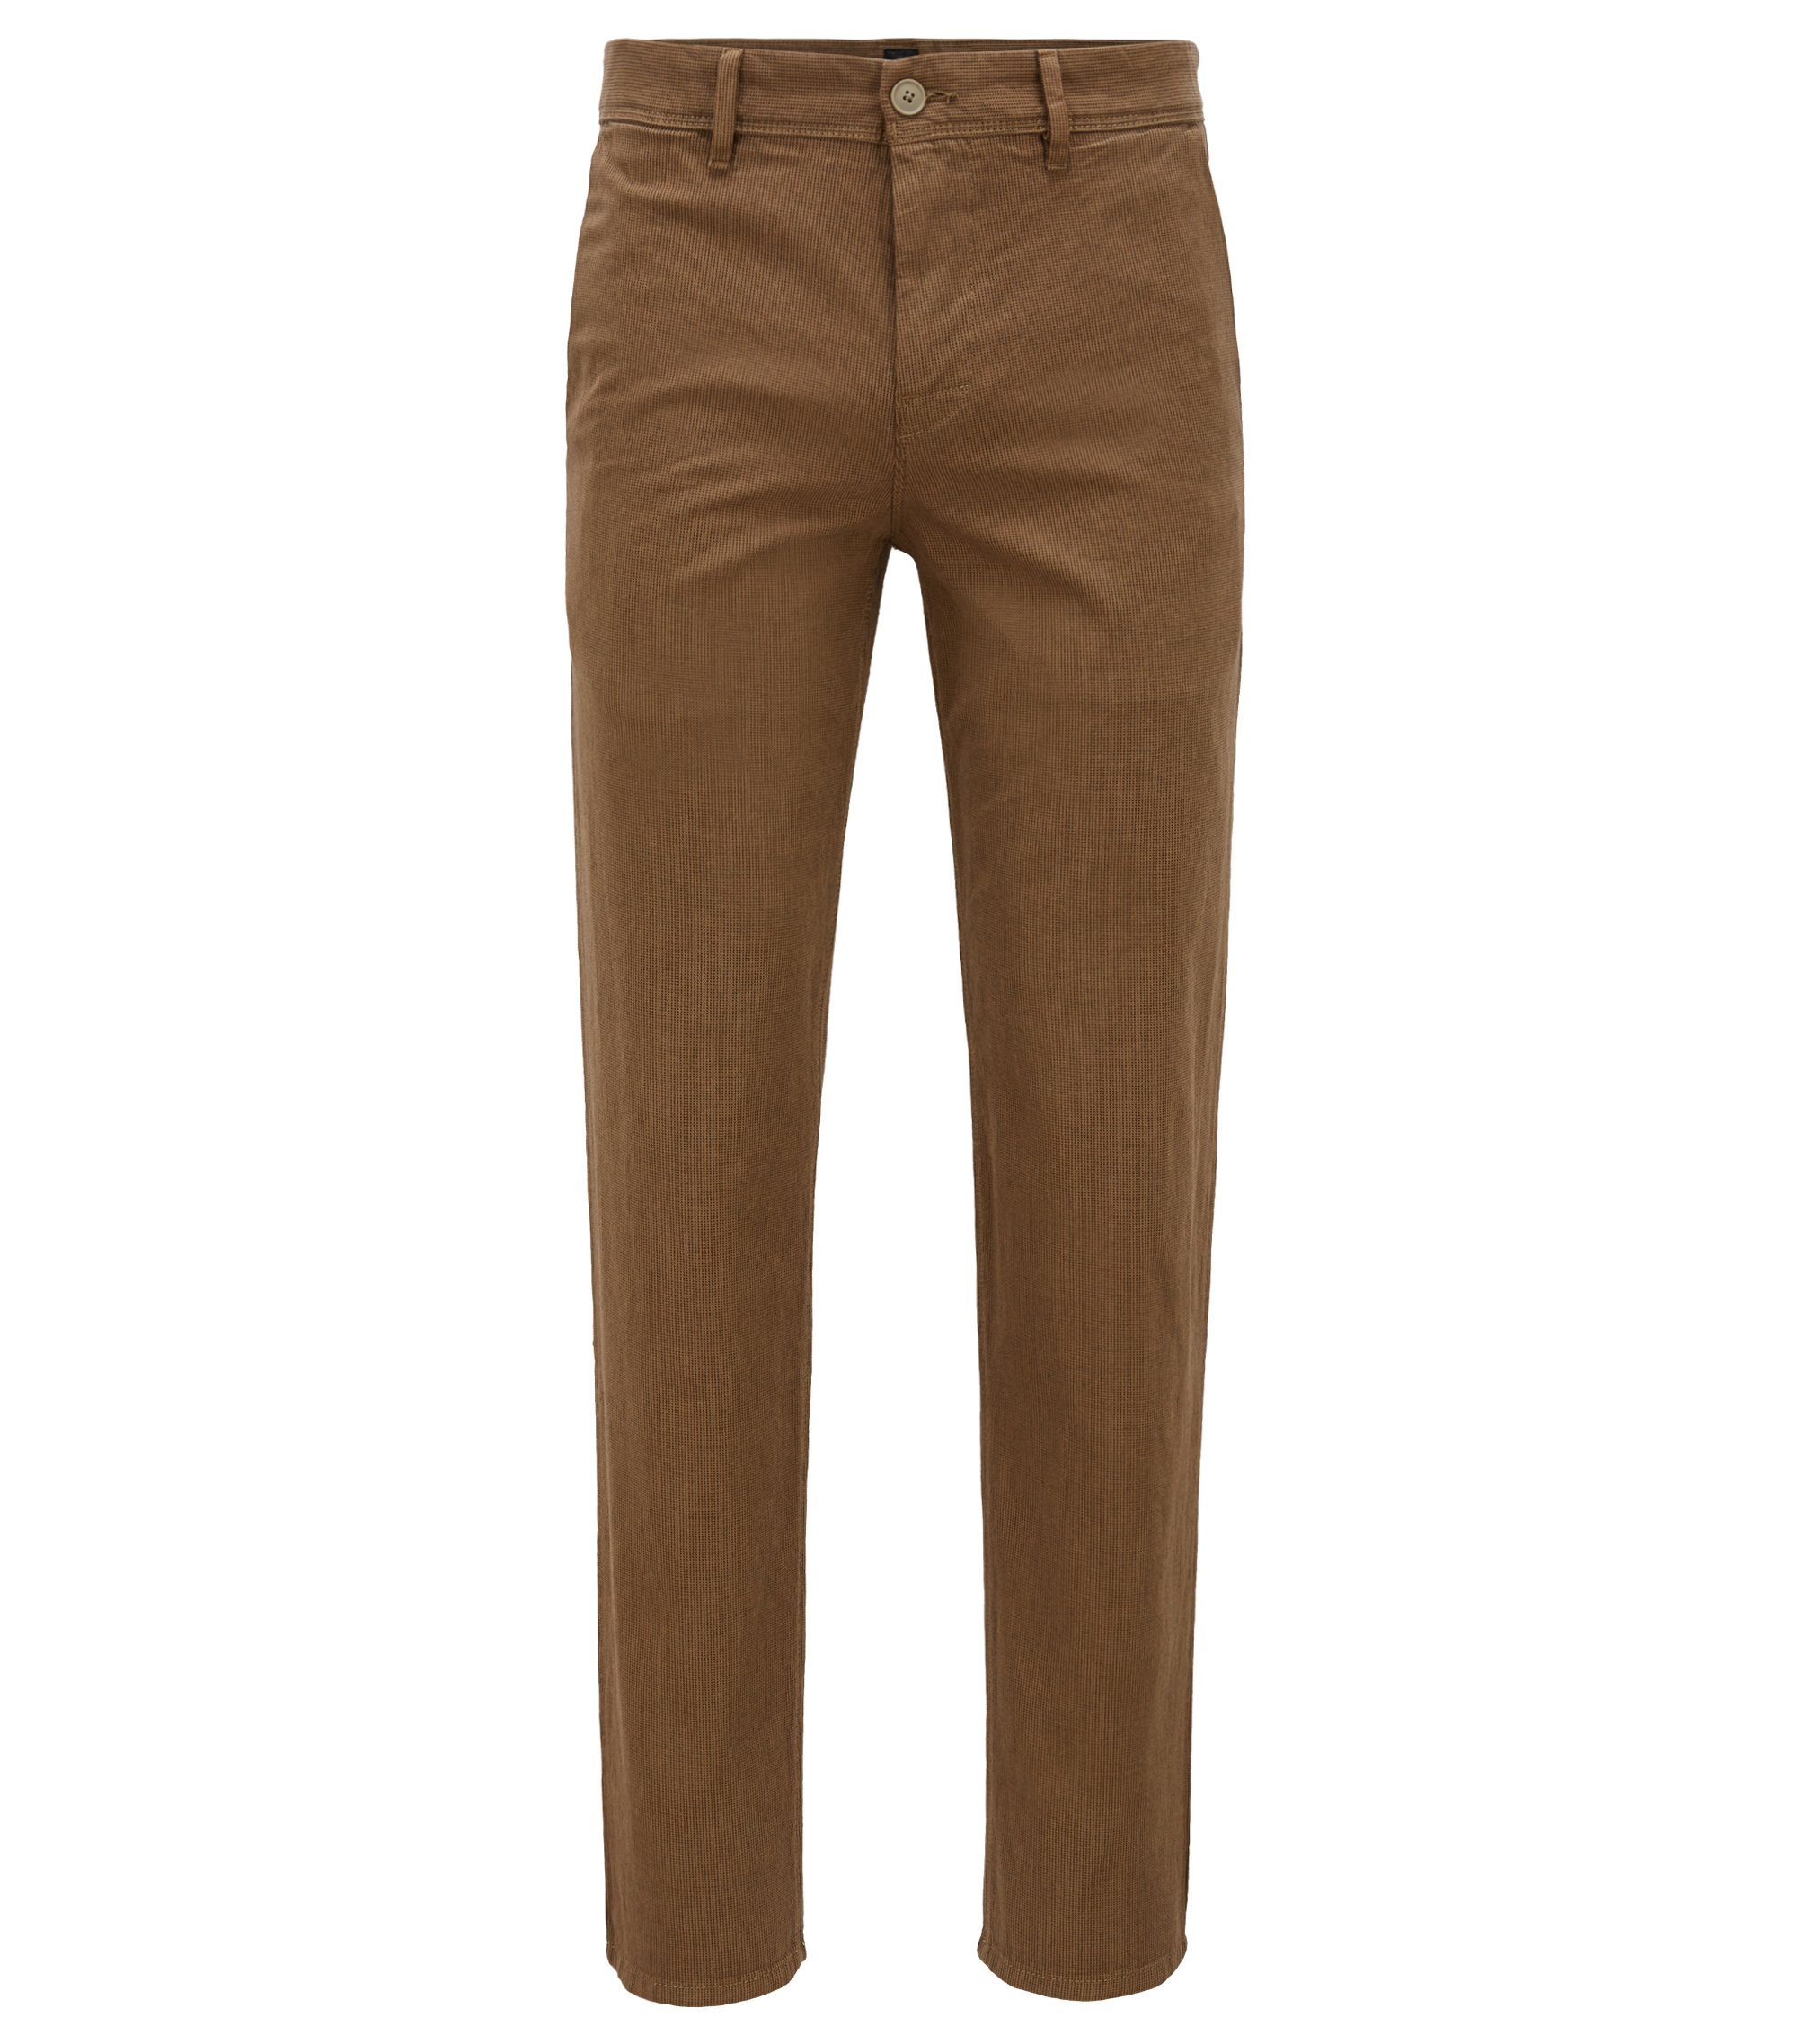 Tapered-Fit Chino aus Stretch-Baumwolle mit dezenter Struktur, Hellbraun